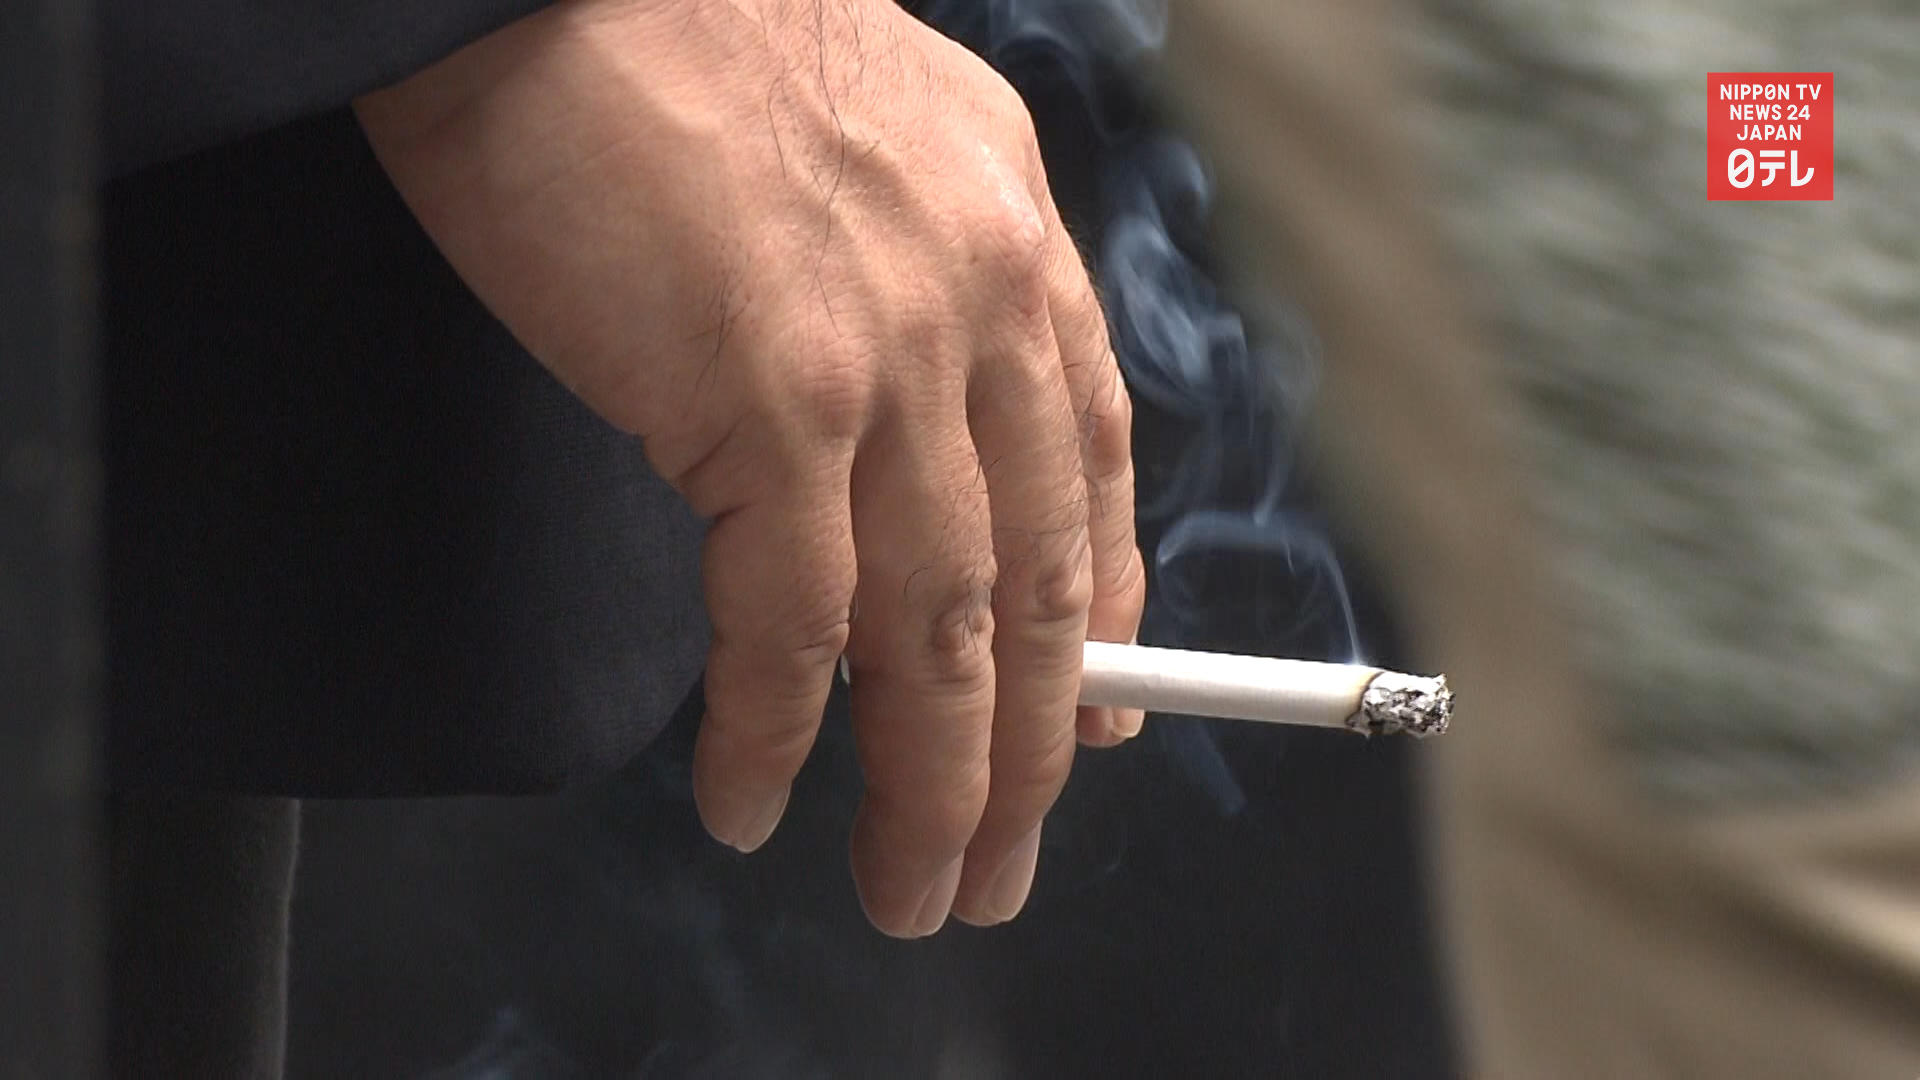 Japan says no to smoking indoors